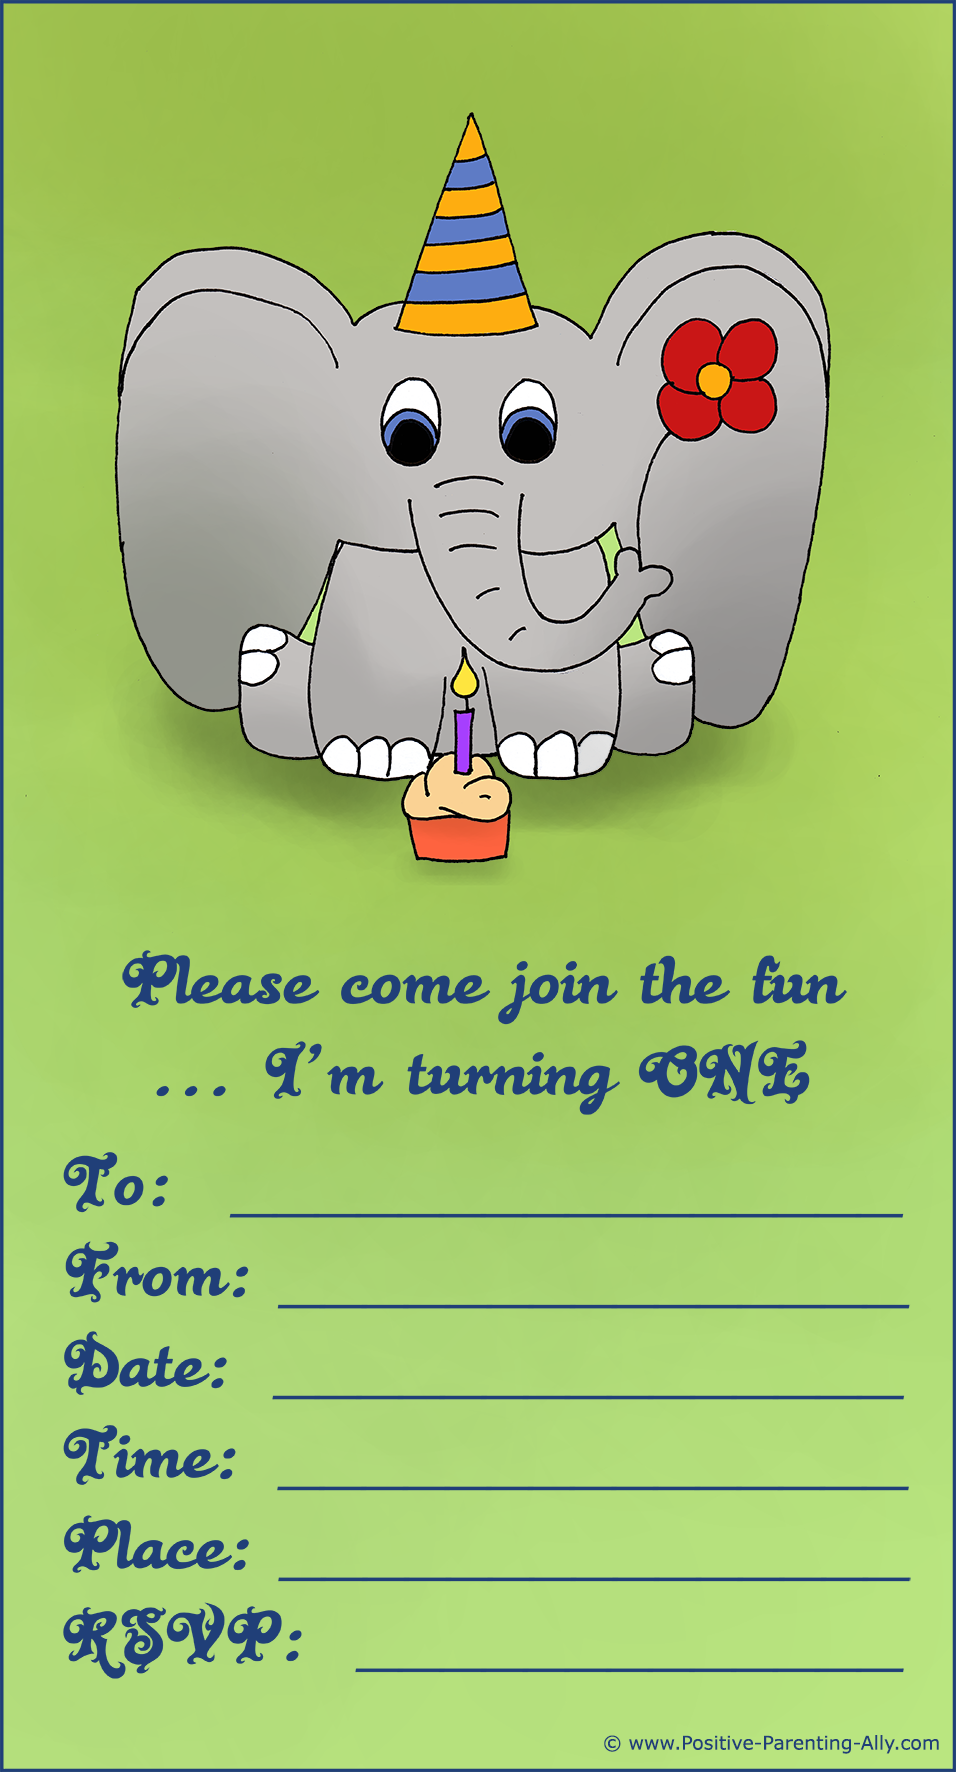 Printable first birthday party invitations: Cute baby elephant for both girls and boys.